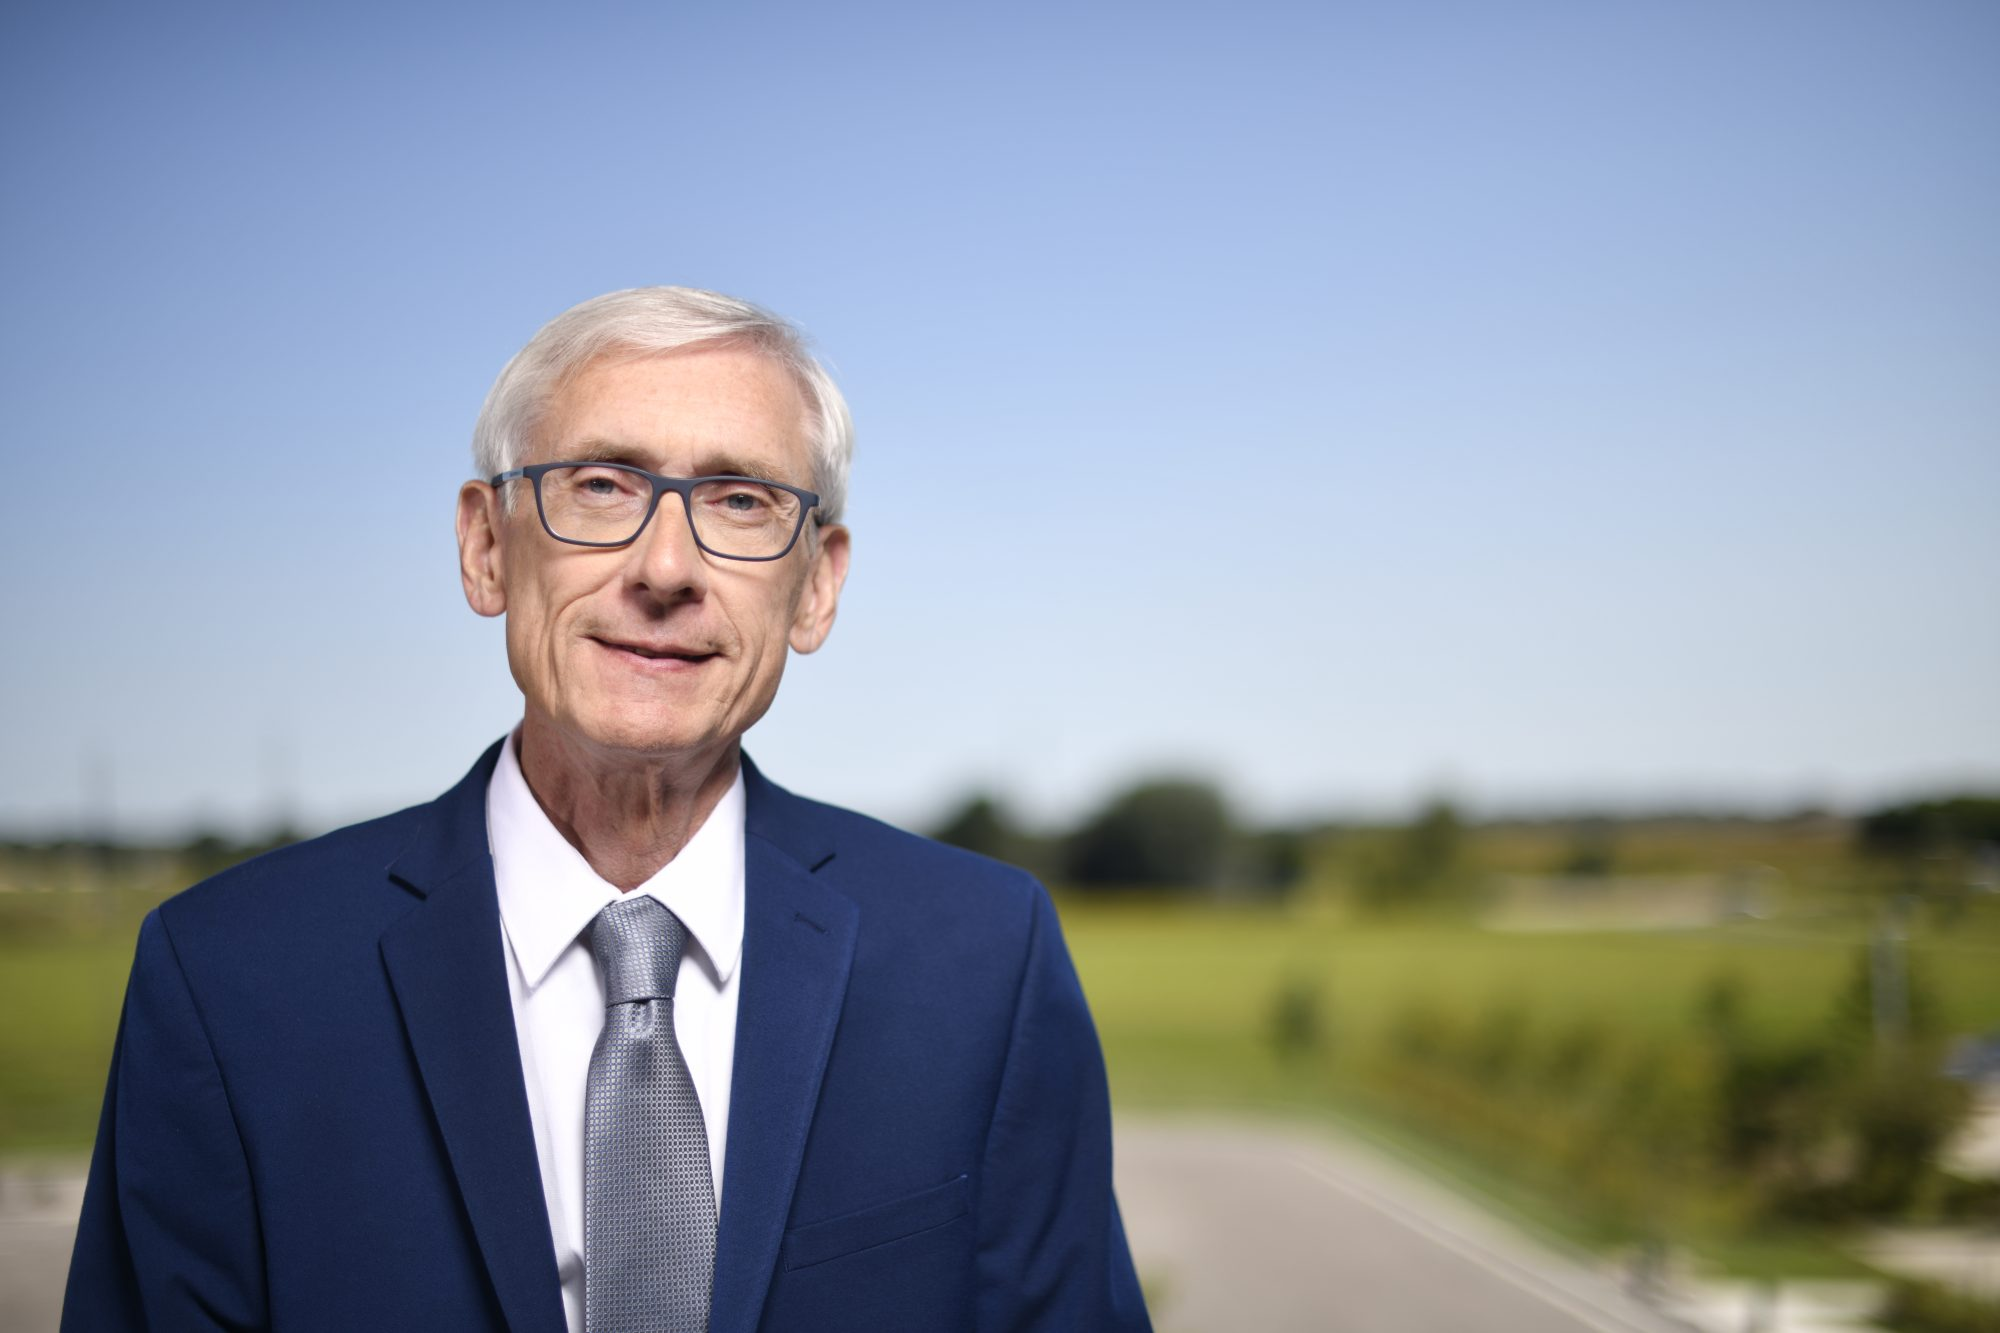 Governor Evers Announces Responsible Tax Relief Plan for Families